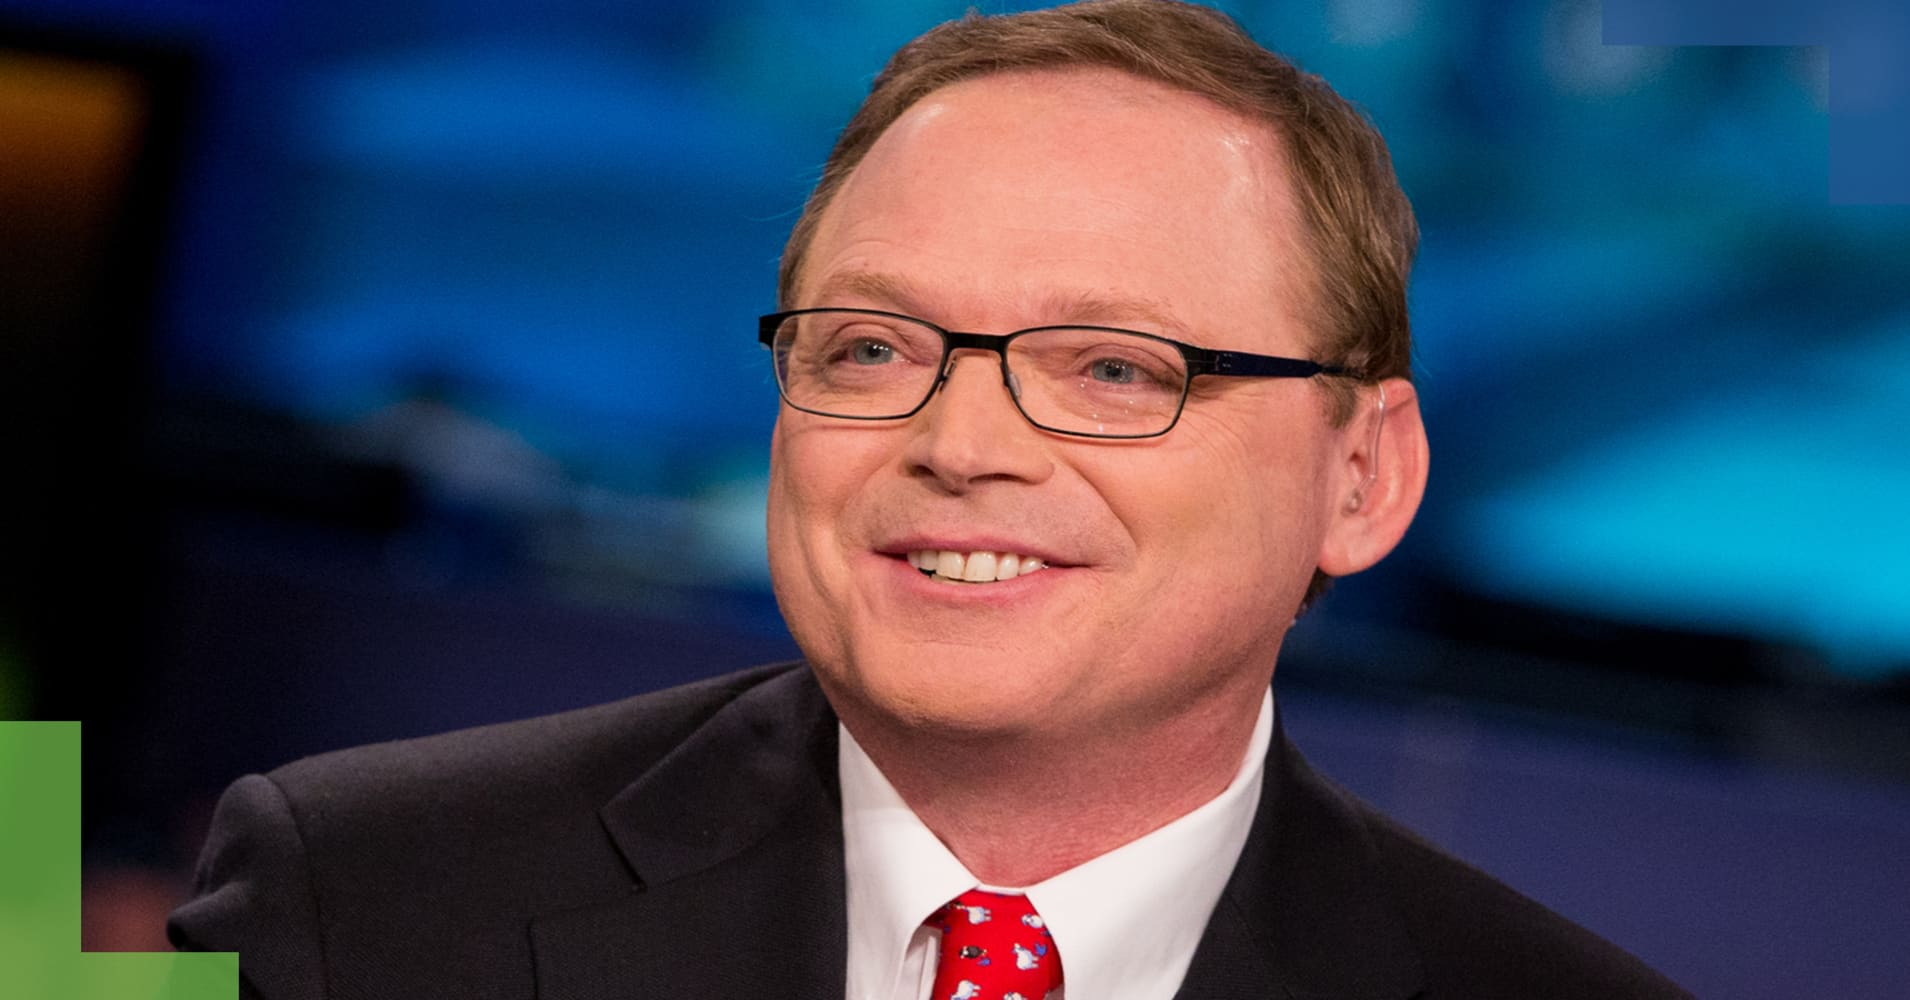 Trump advisor Hassett: Emerging markets fallout, not US inflation, poses 'biggest risk' to economy